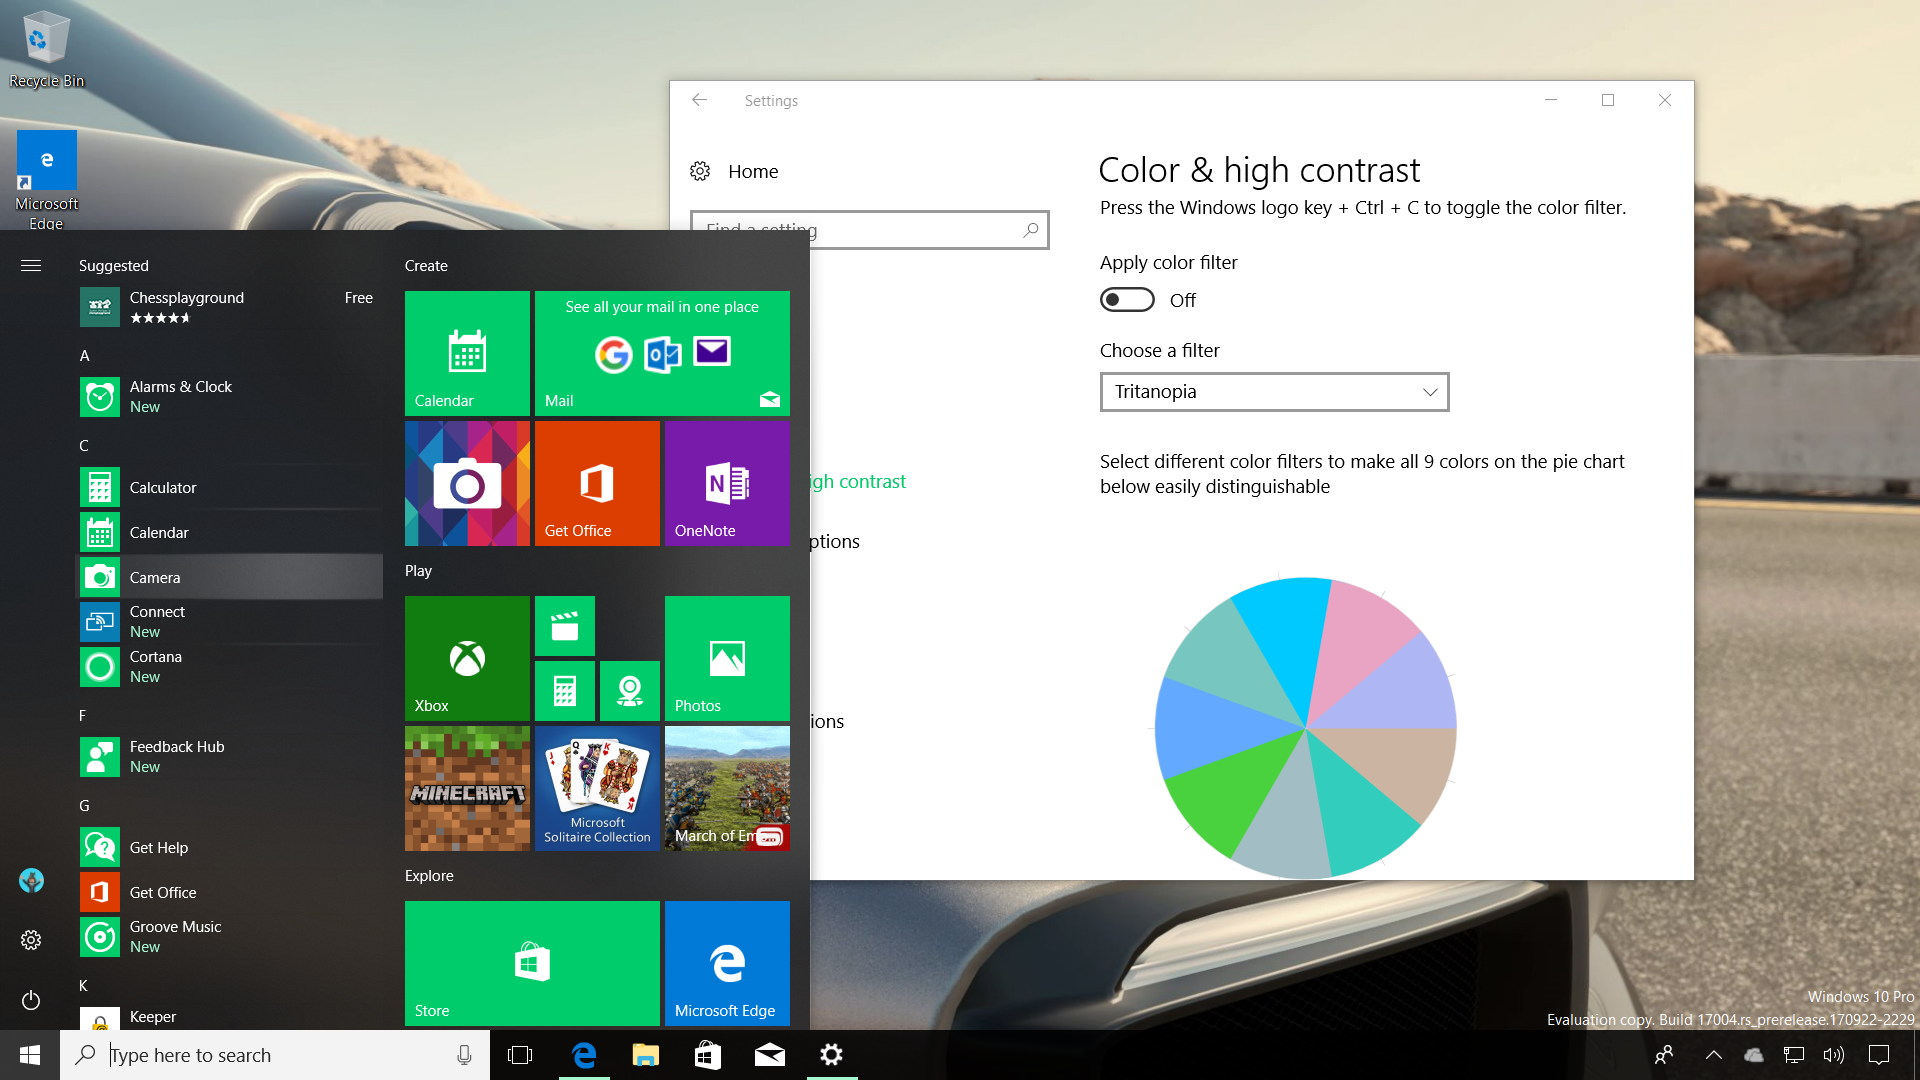 Windows 10 build 17004 new features